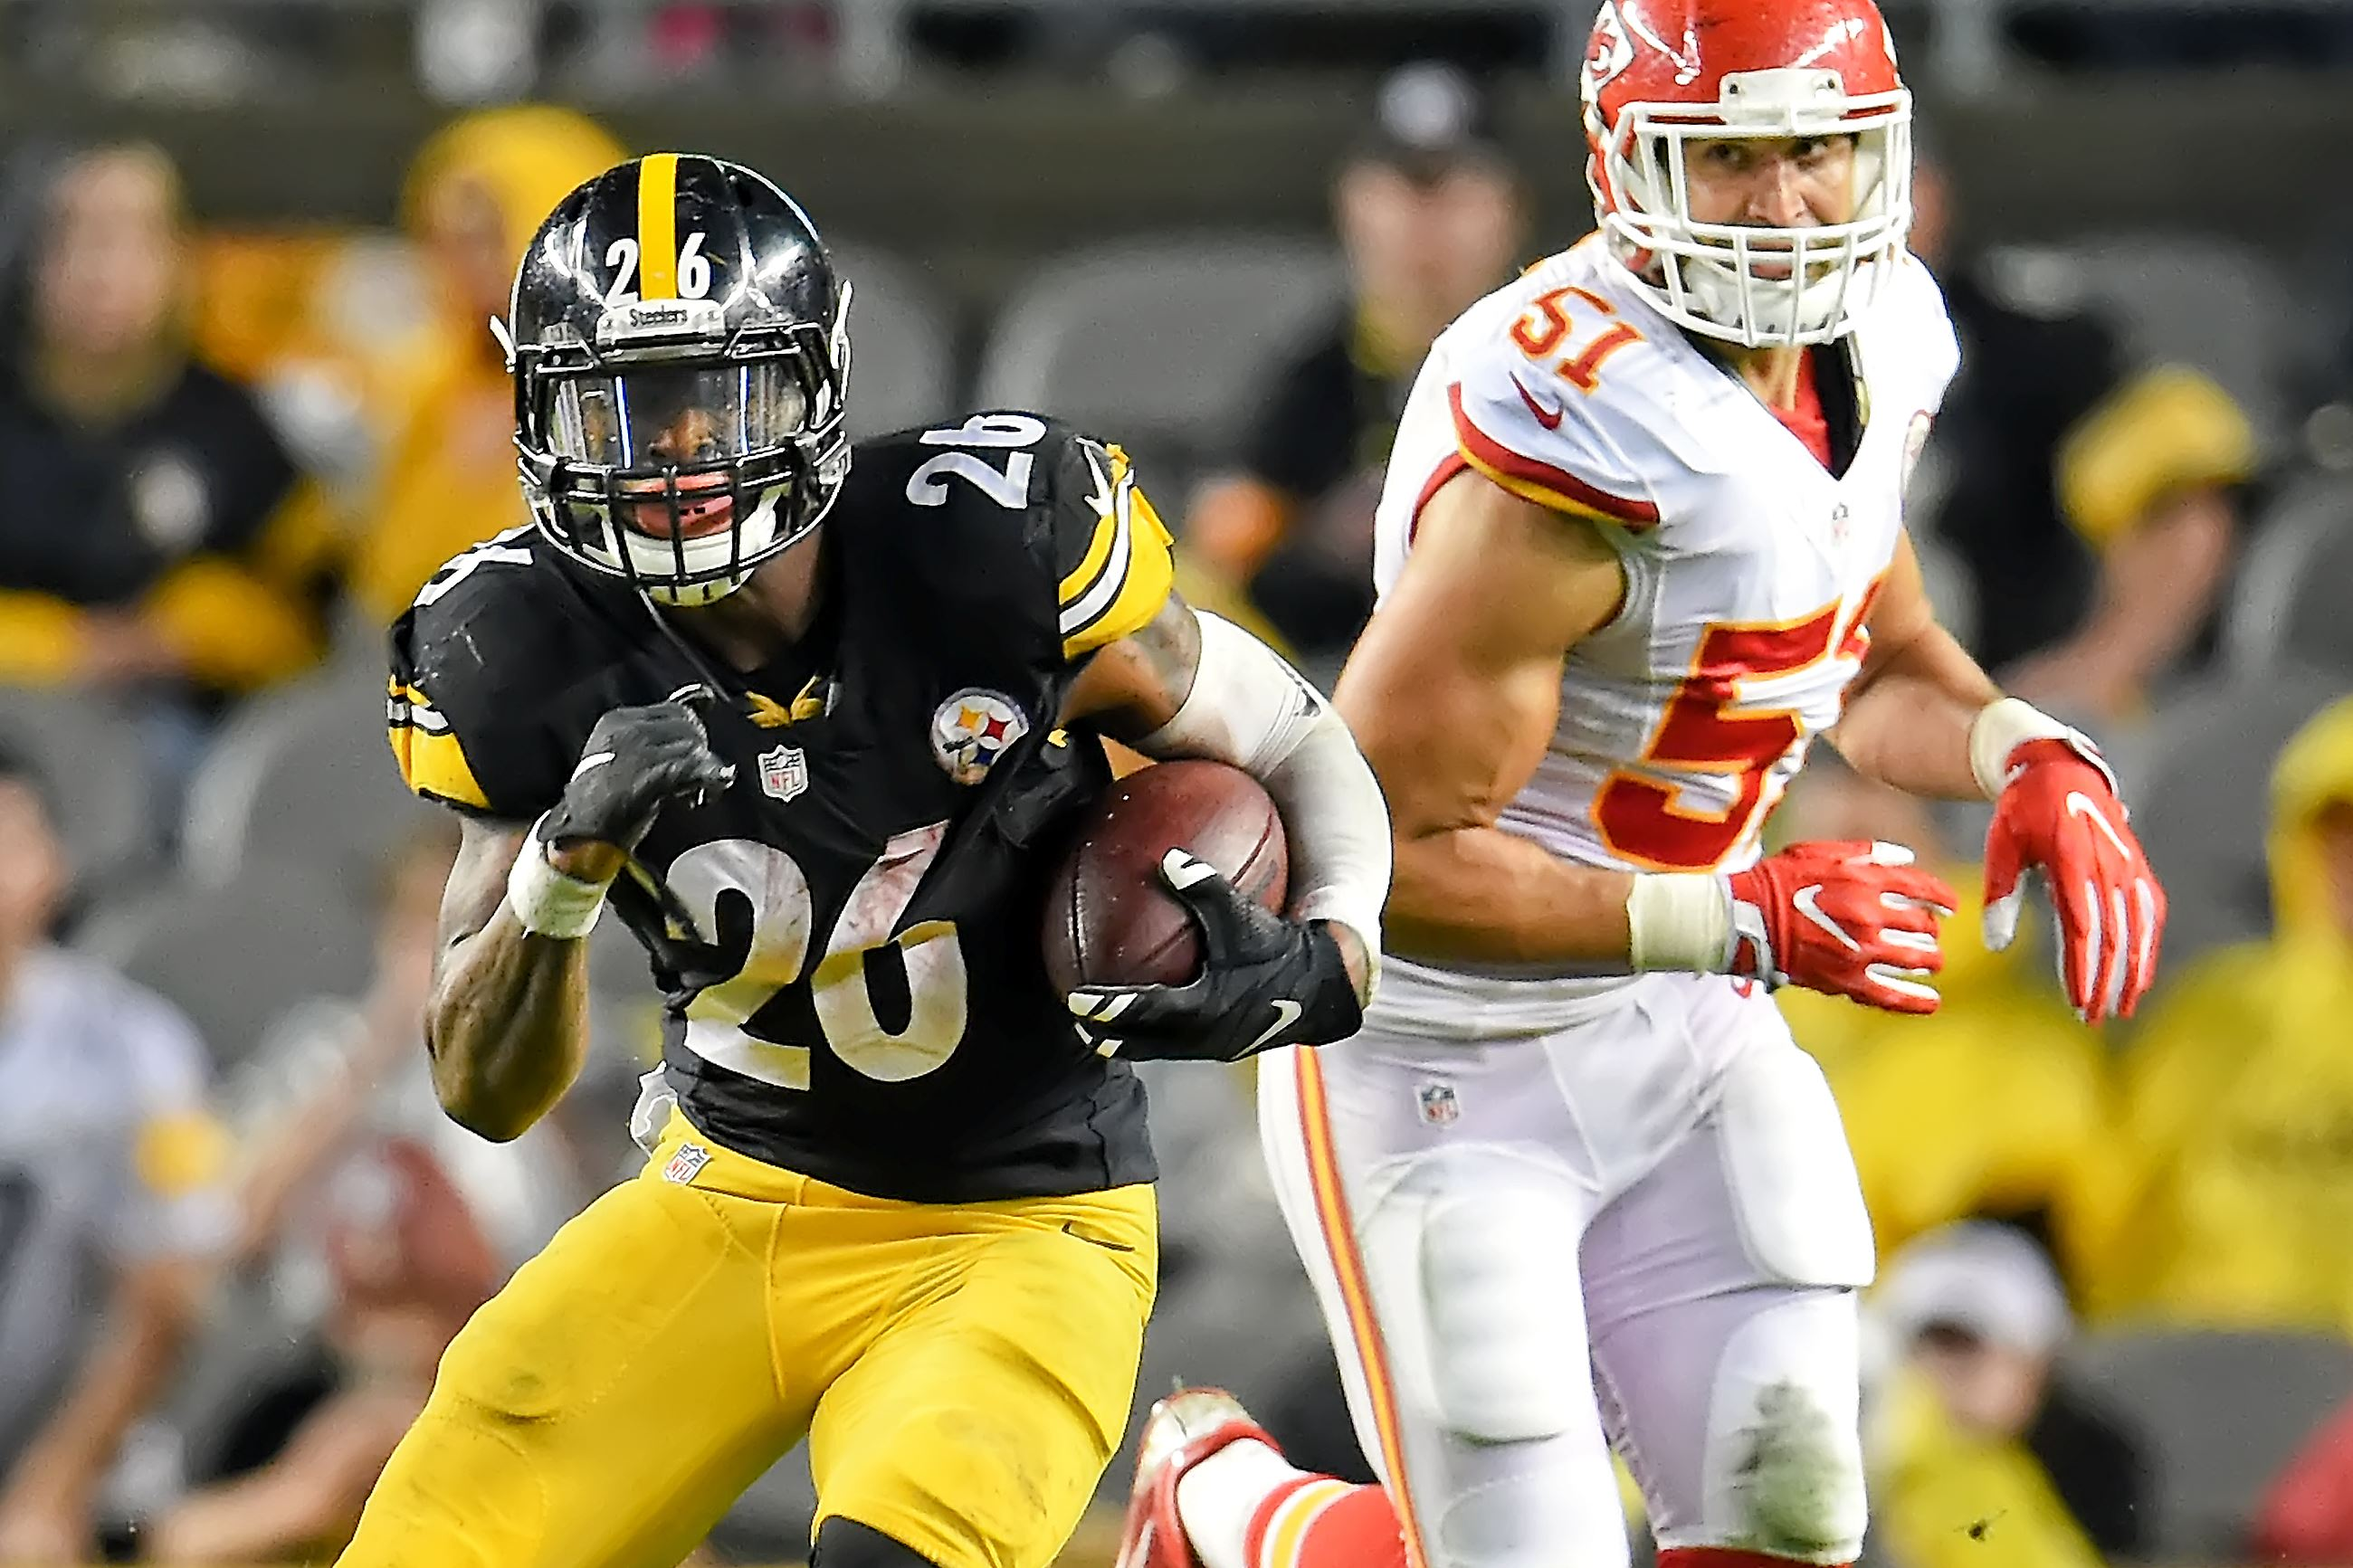 Le'Veon Bell, Steelers Running Back